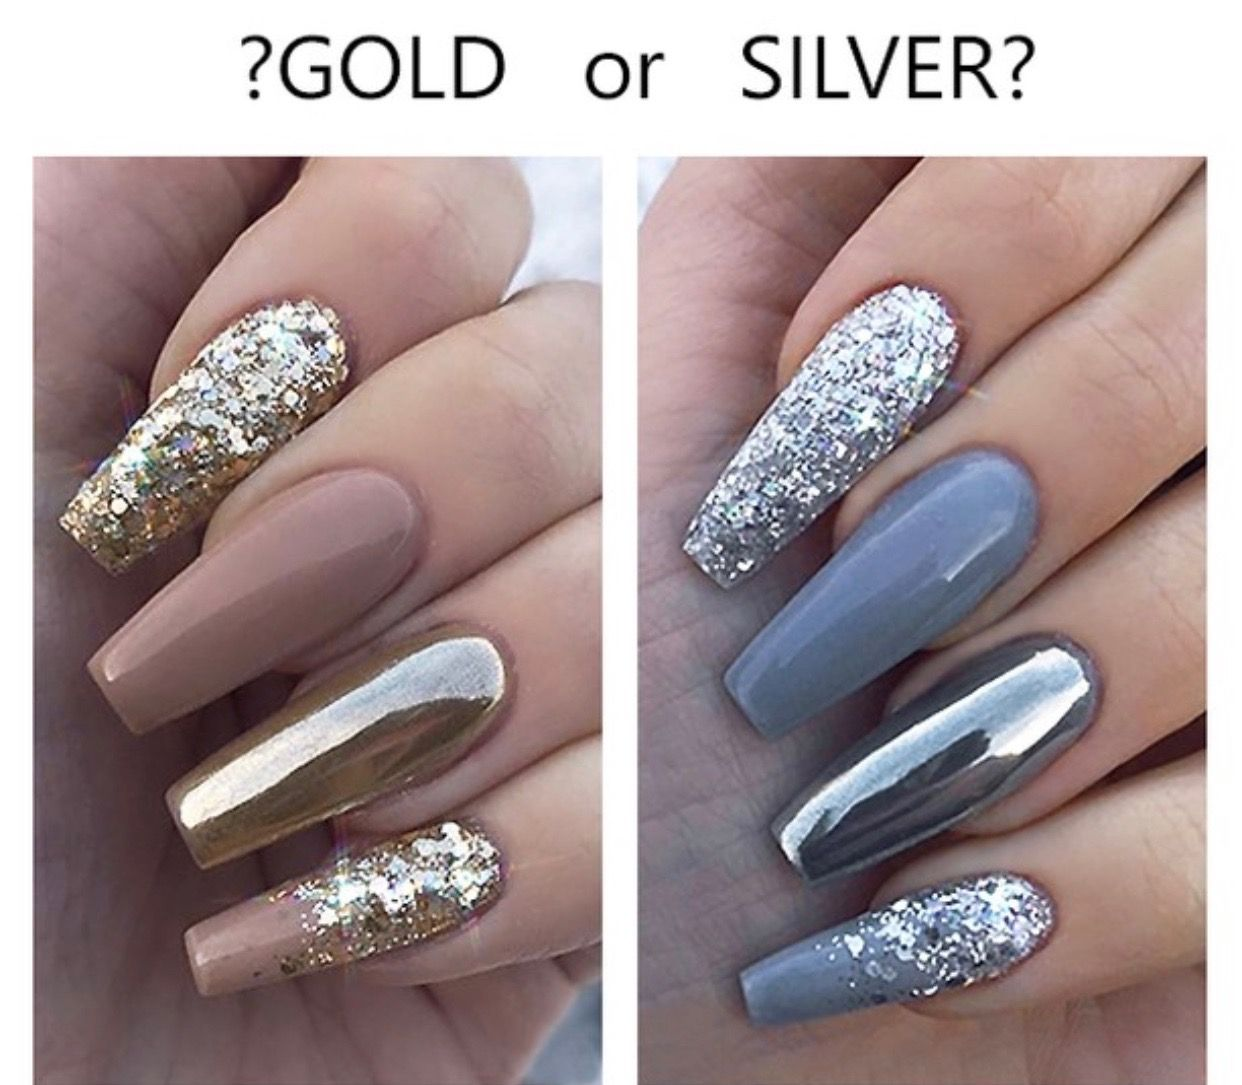 Pin by Katherine Moore on Nails | Pinterest | Manicure, Nail nail ...